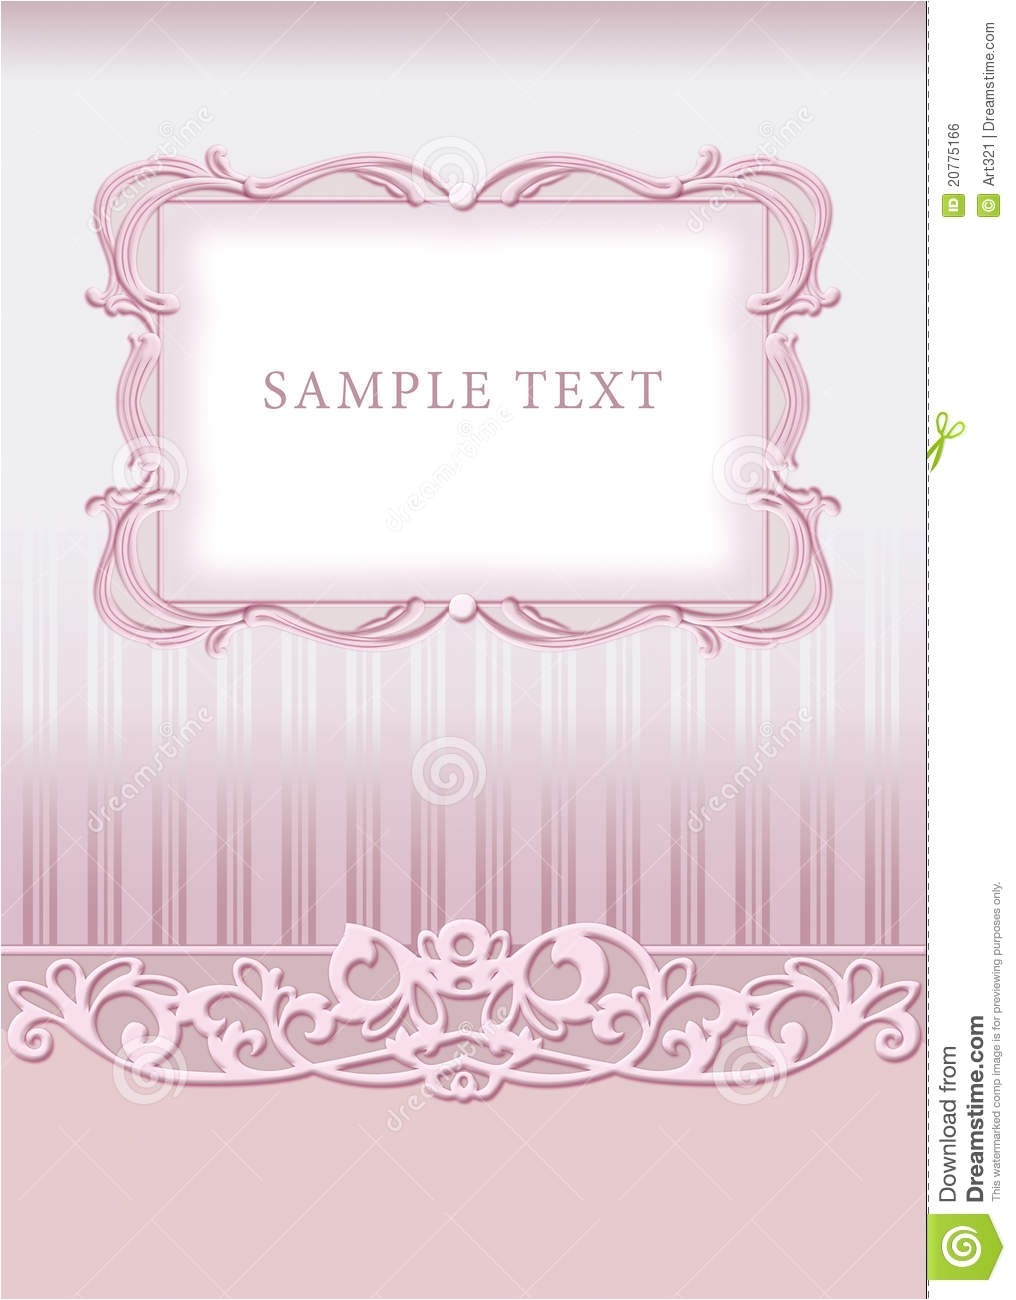 Time Frame for Wedding Invitations Wedding Invitation Frame Royalty Free Stock Image Image